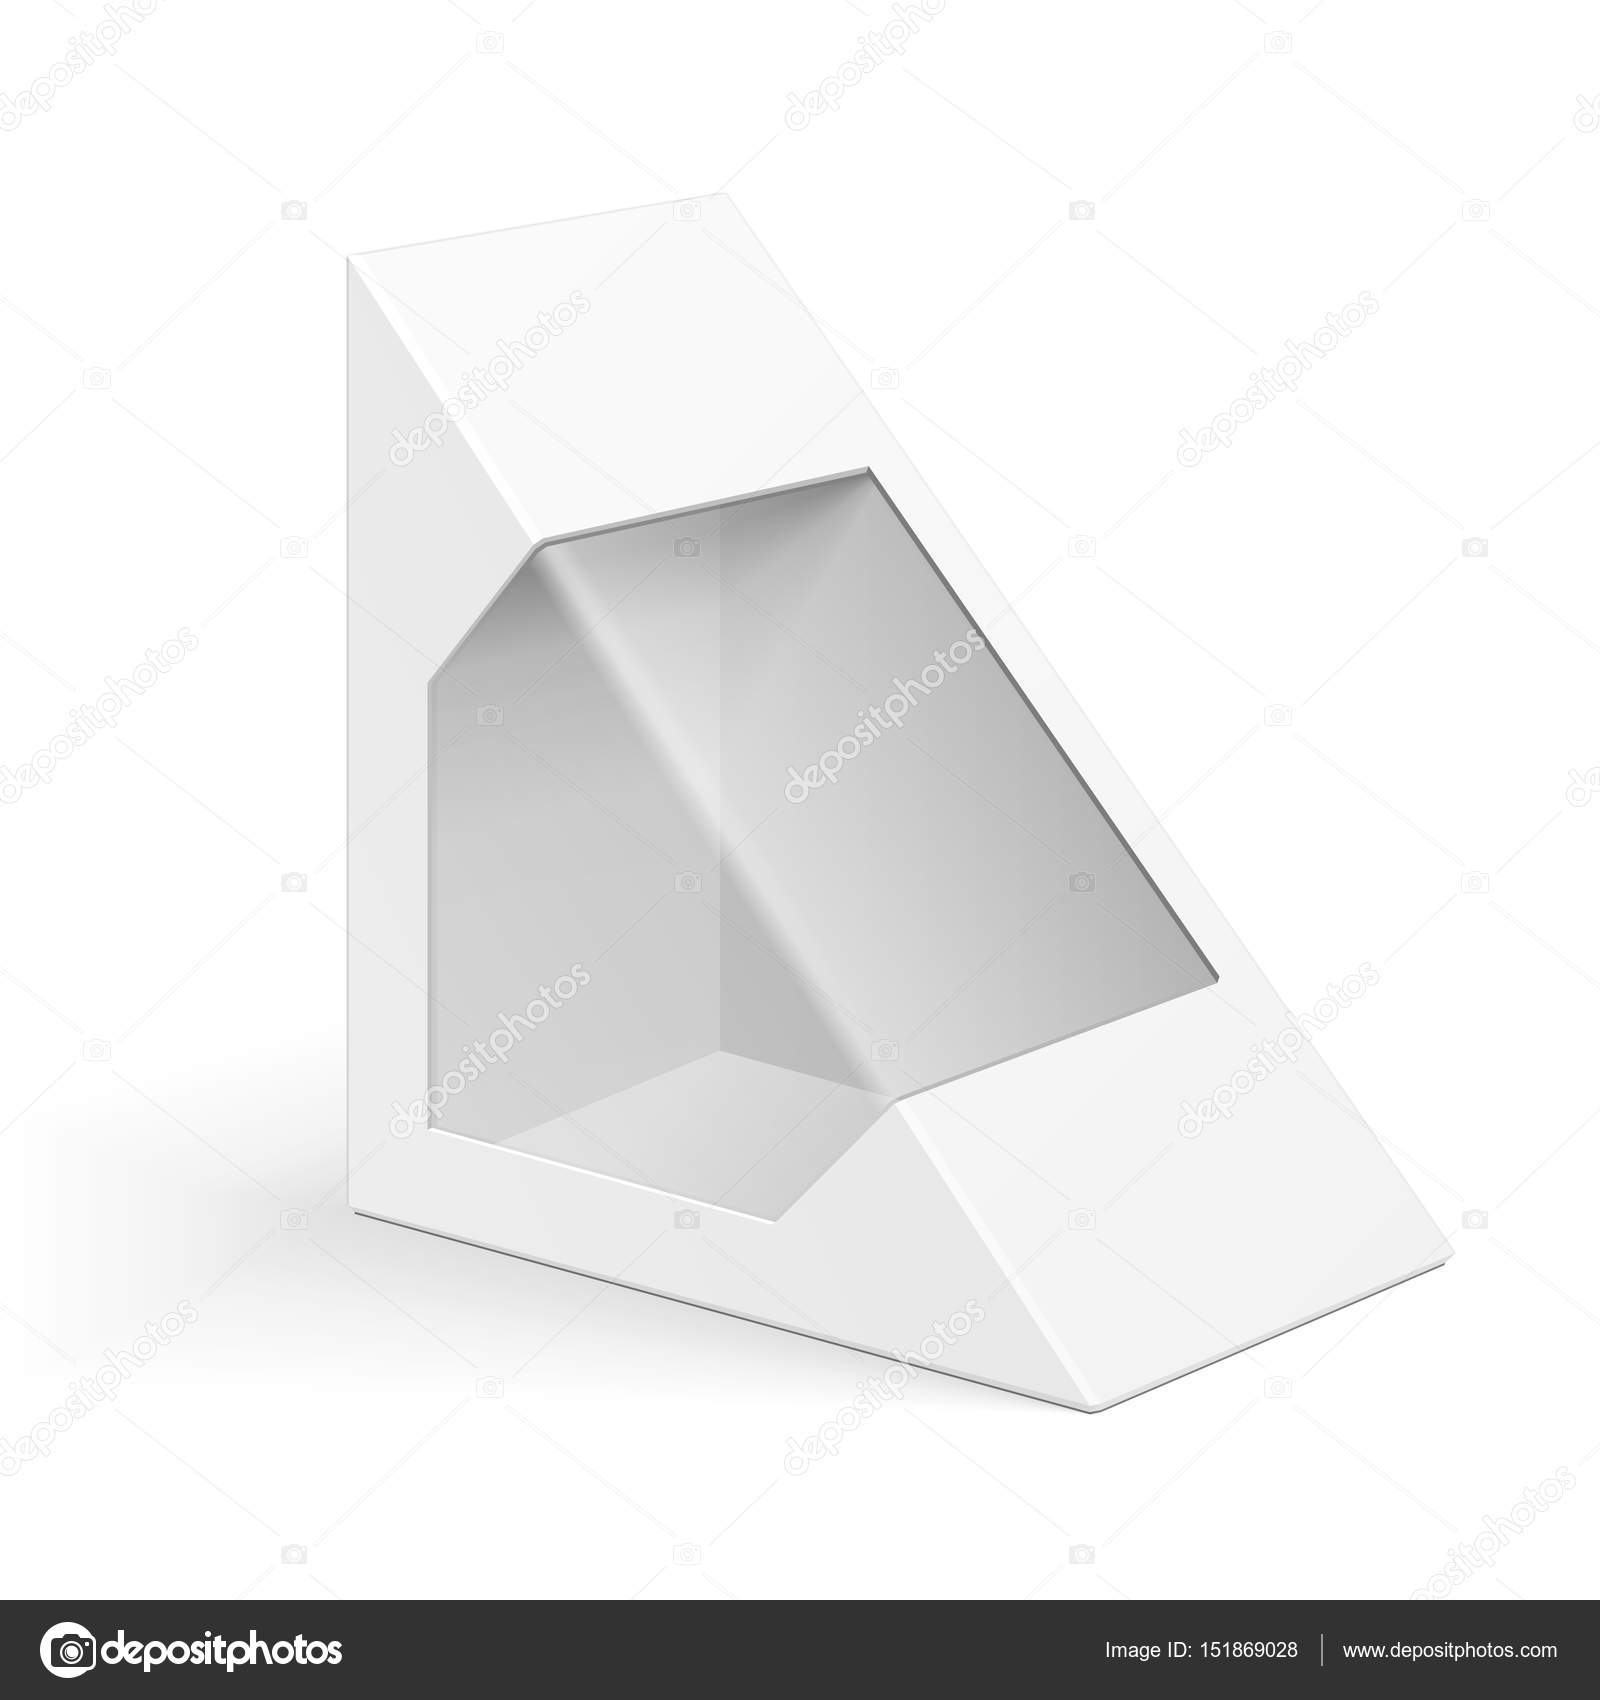 triangle packaging template - triangle box white cardboard triangle carry box bag